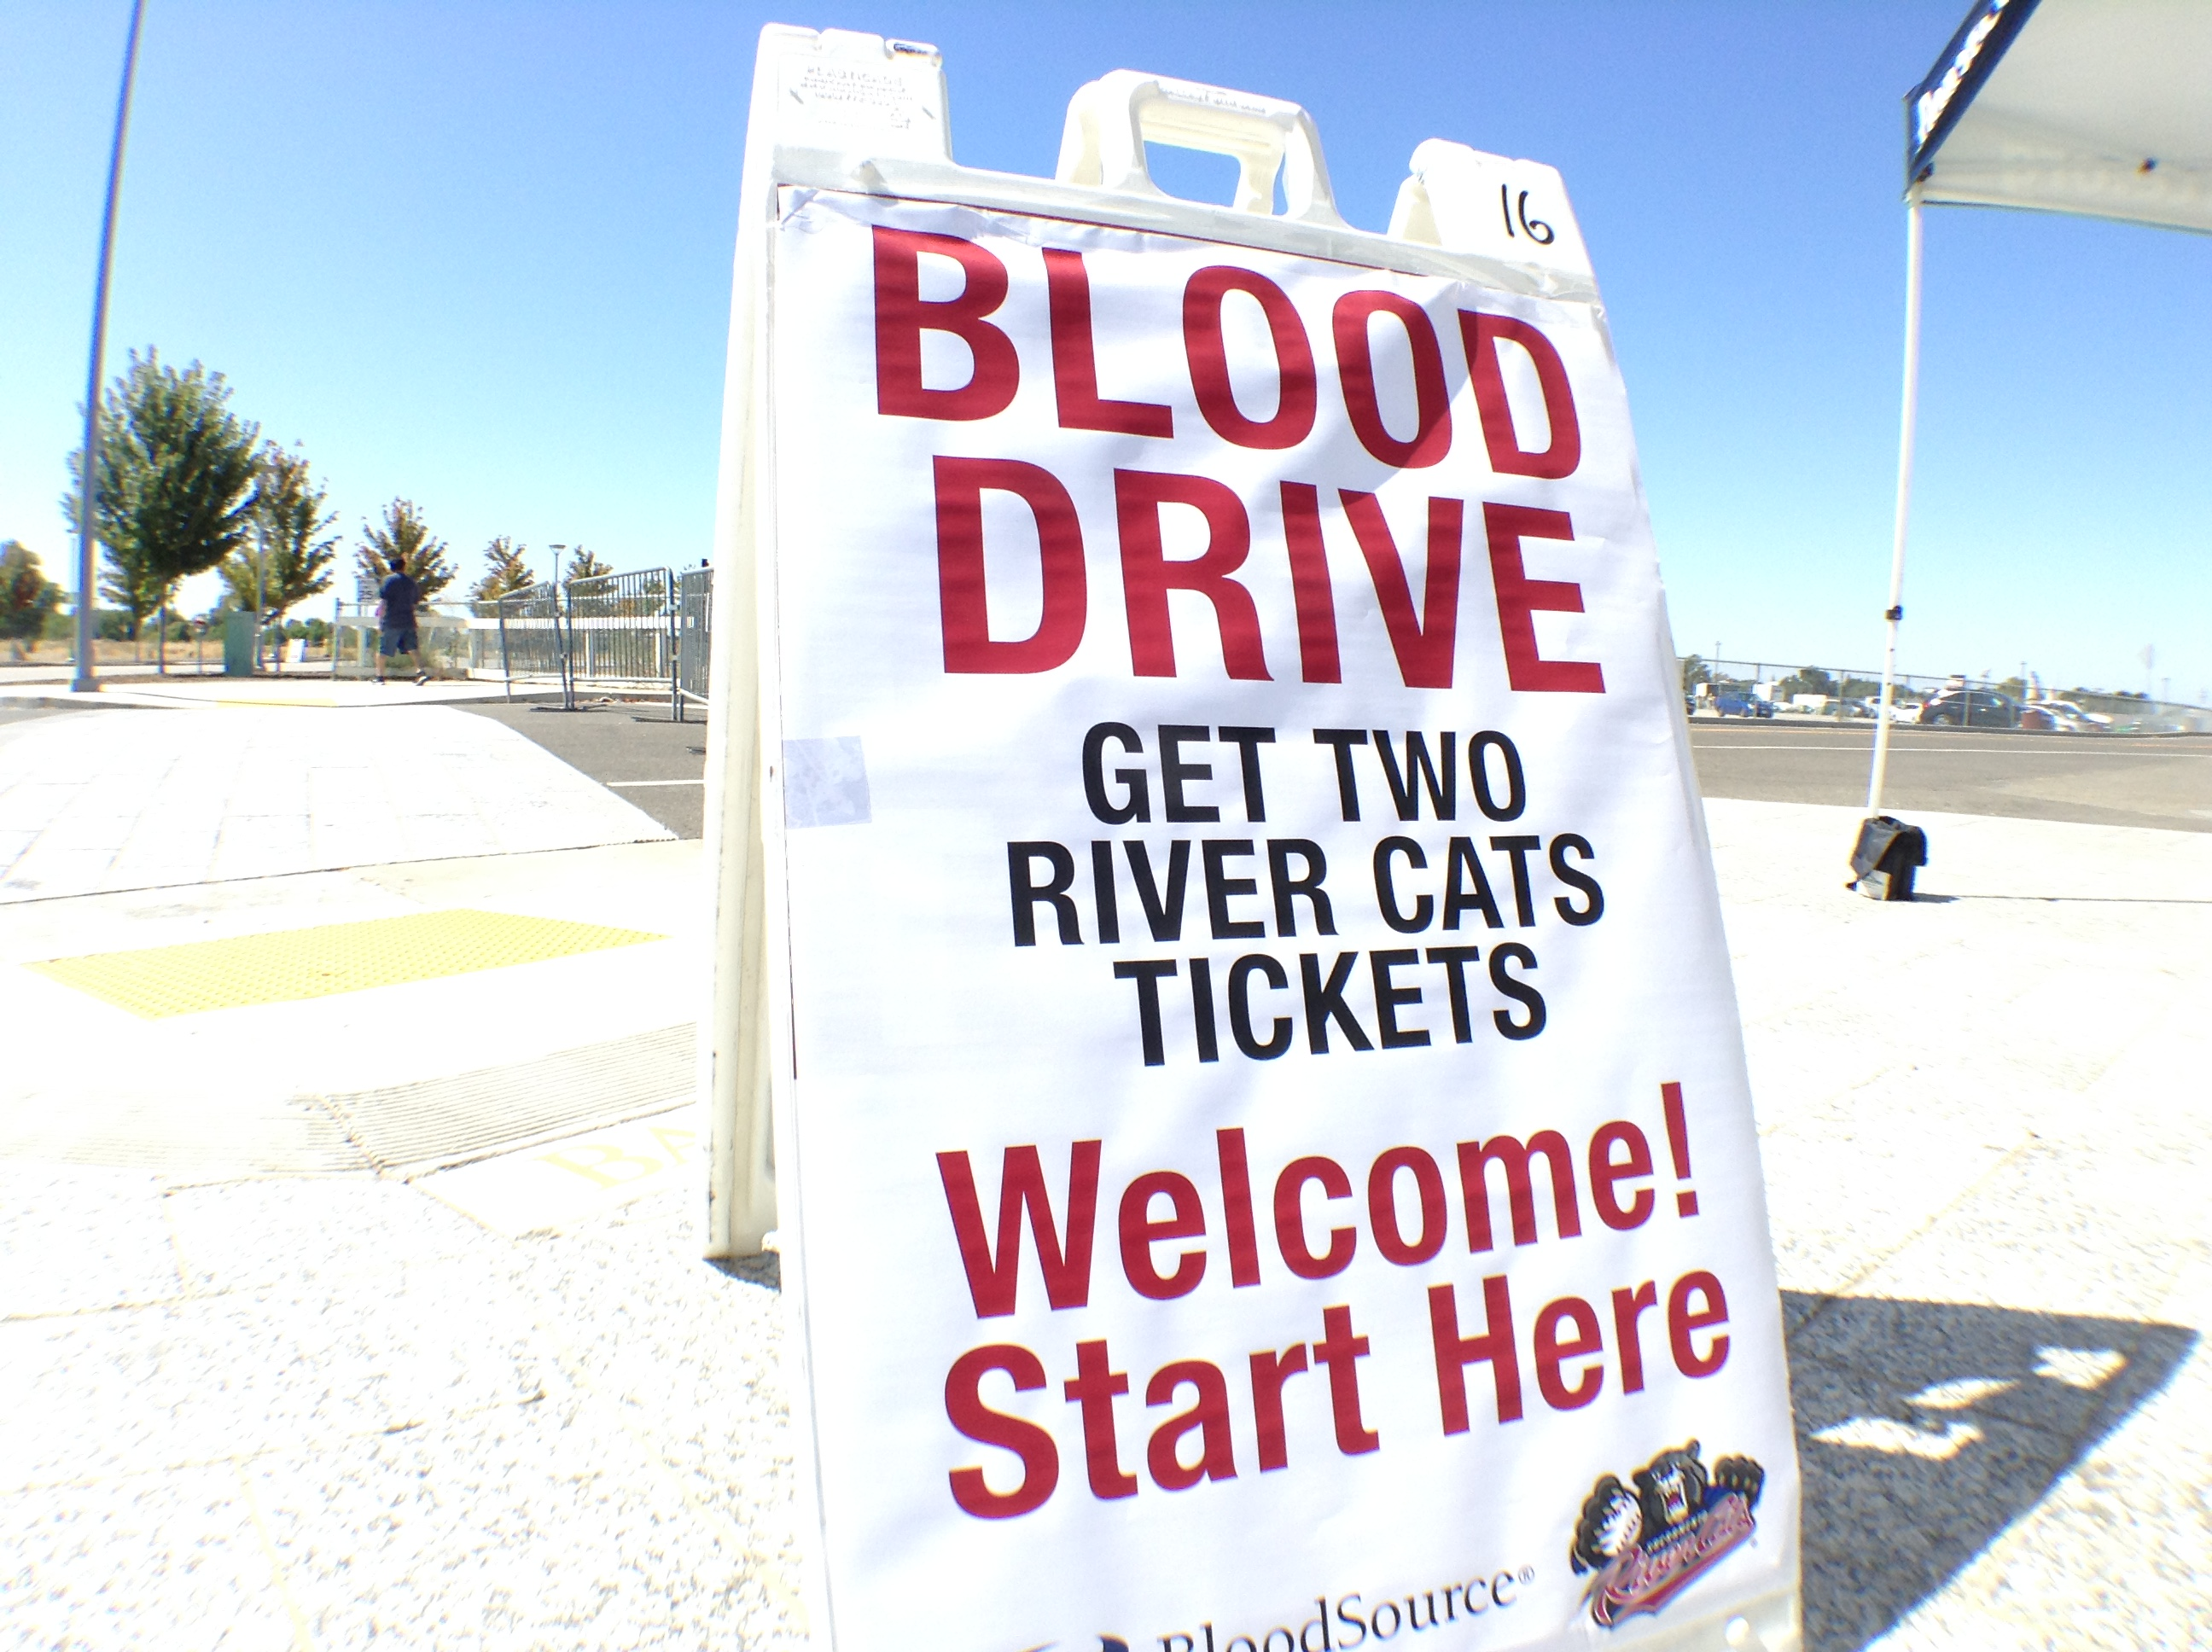 VIDEO: Blood Drive Work To Fill Huge Need